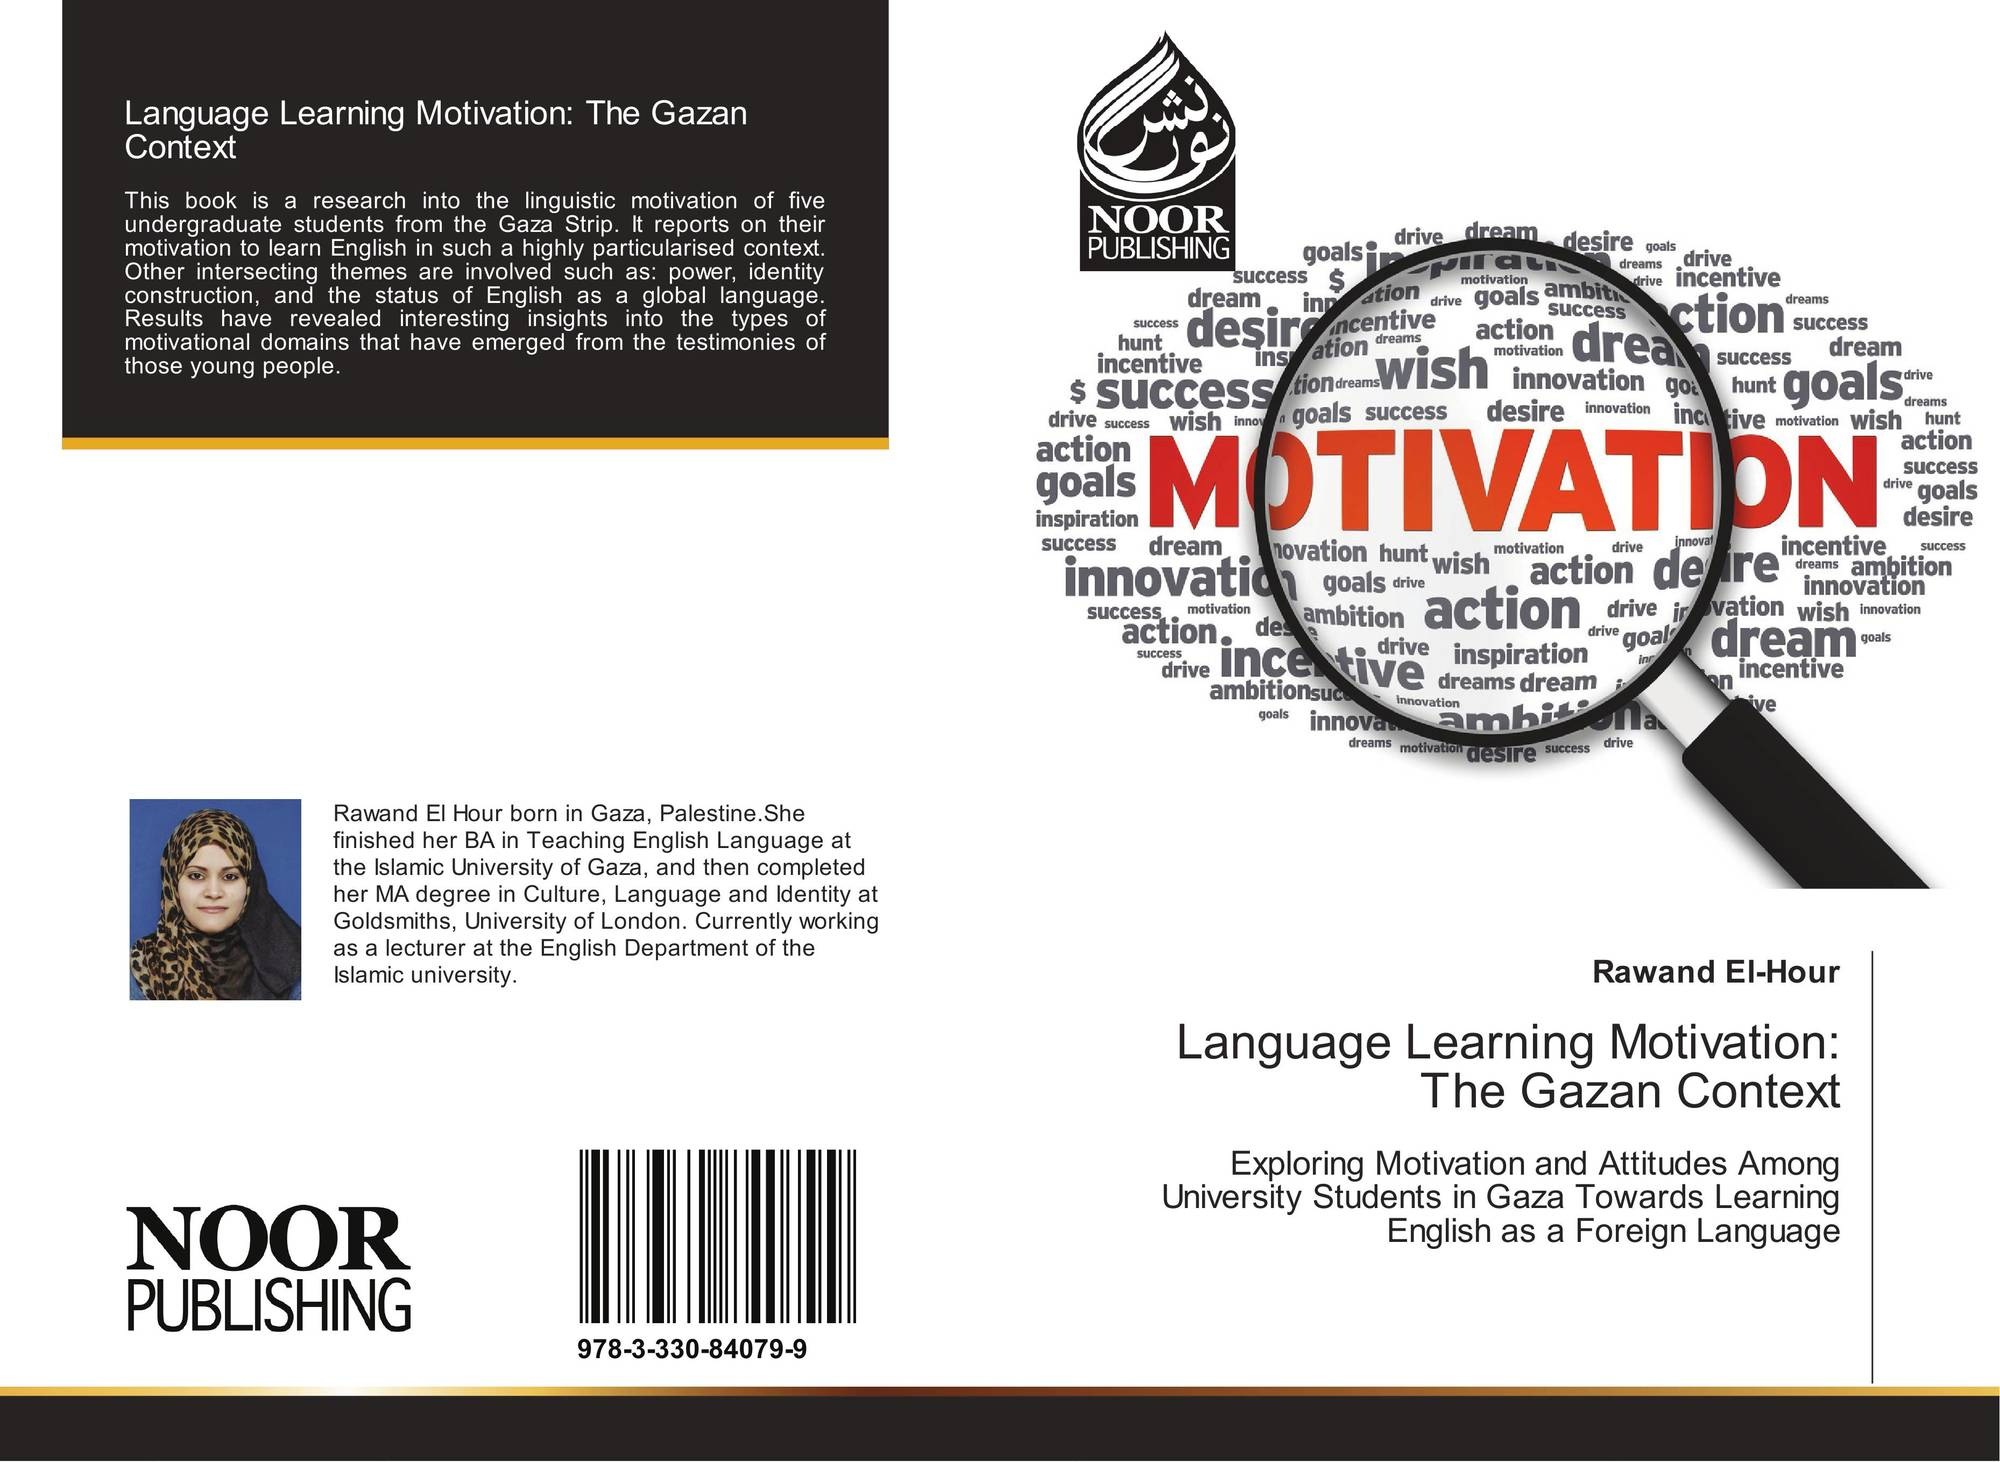 motivation and attitudes towards learning english Motivation intrinsic motivation and extrinsic motivation 2002 1989) 2012) students will lose interest towards learning since attitudes produce an obstacle in the learning process and prevent them from obtaining new second language knowledge2 siti sukainah che mat and melor md saemah and phillips.